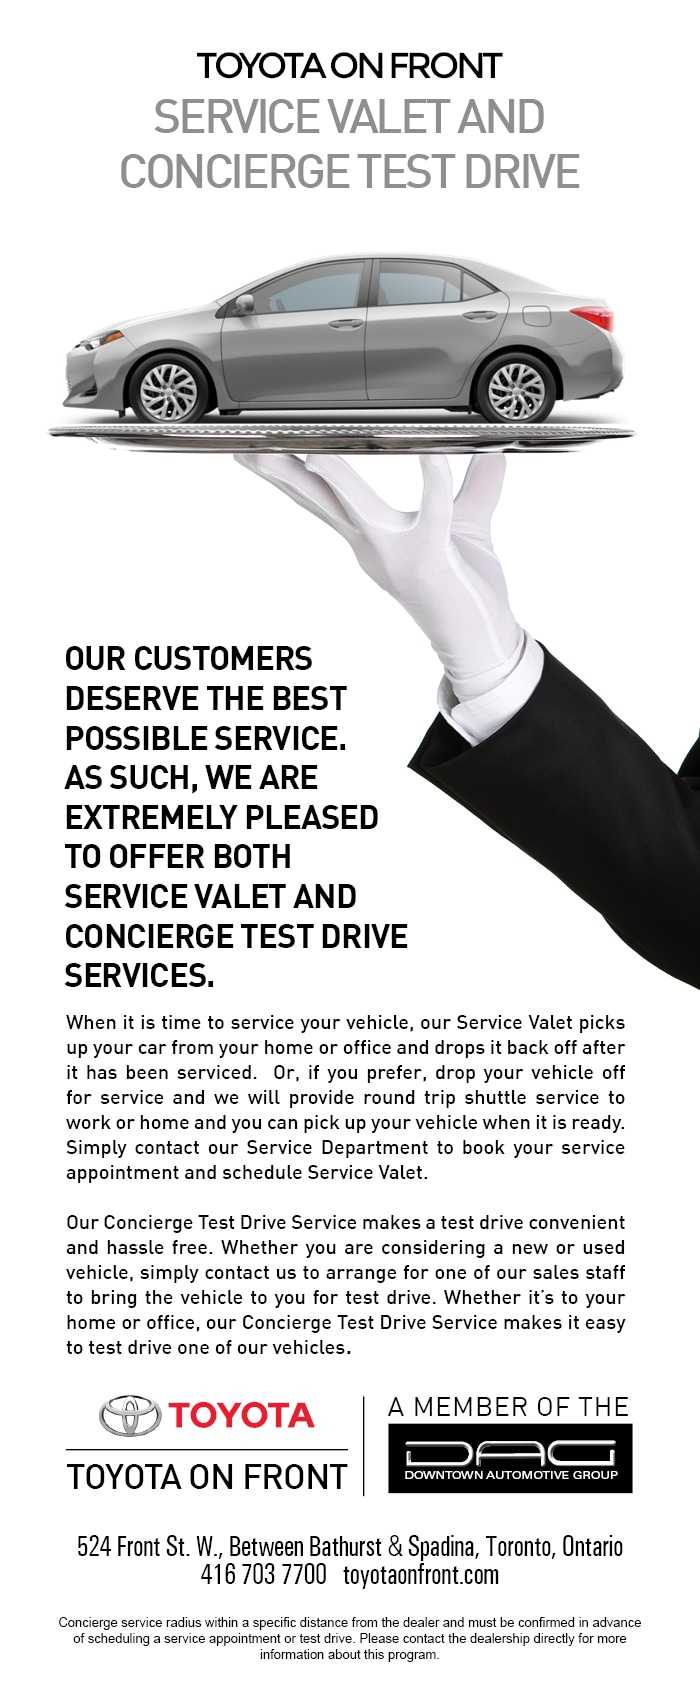 Toyota on Front | Concierge Service